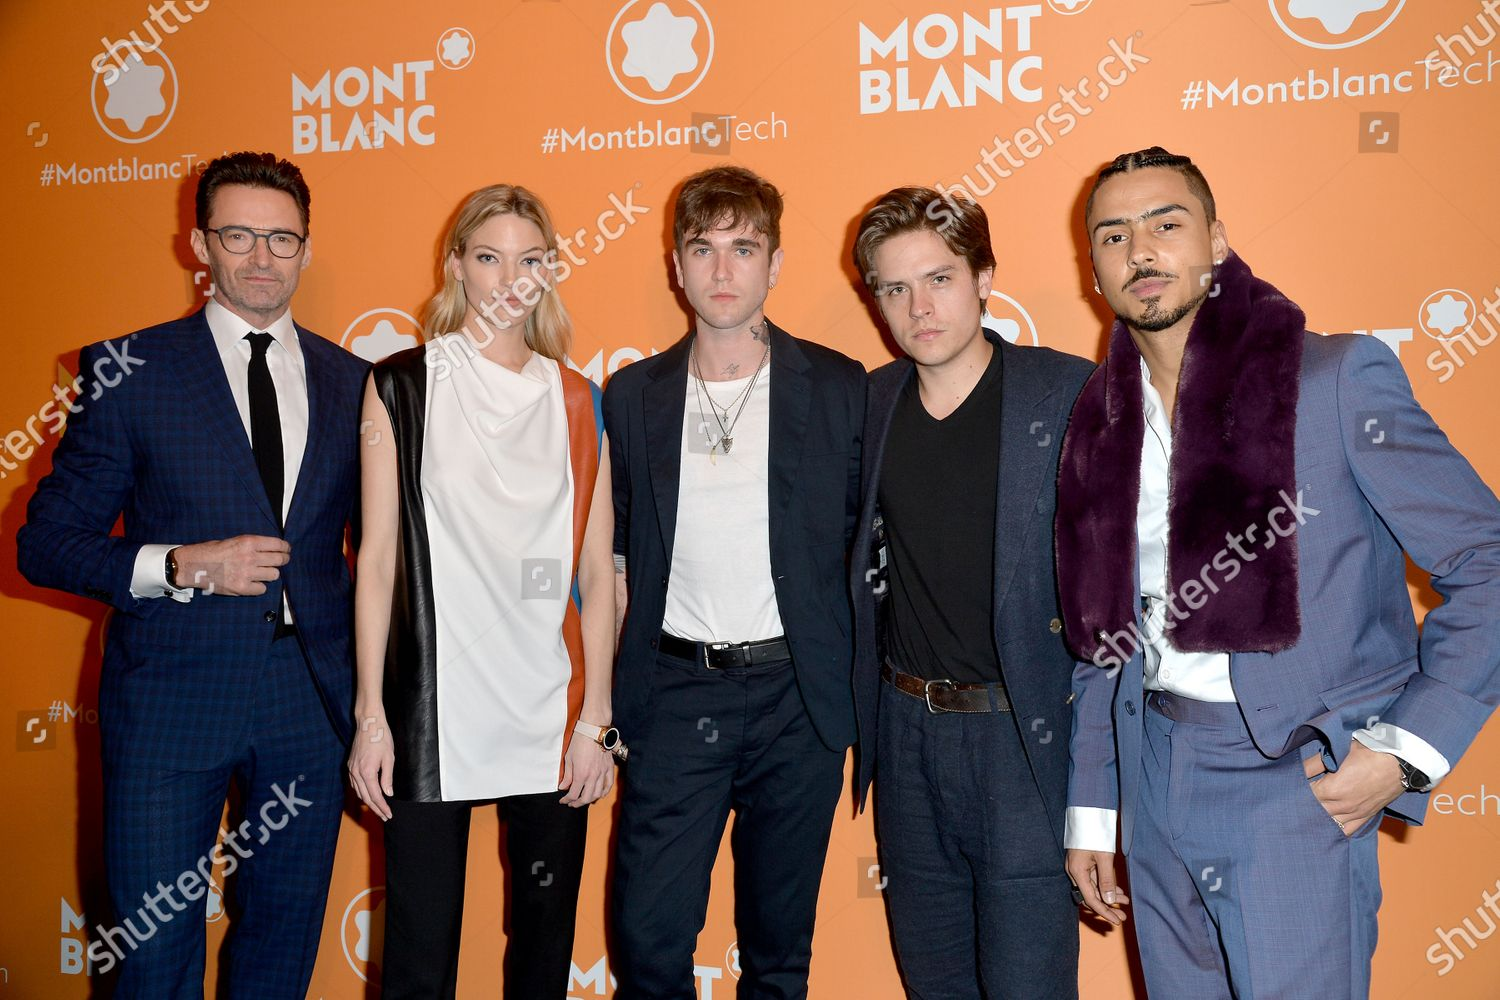 Stock photo of Montblanc MB 01 Smart Headphones & Summit 2+ Launch Party, New York, USA - 10 Mar 2020